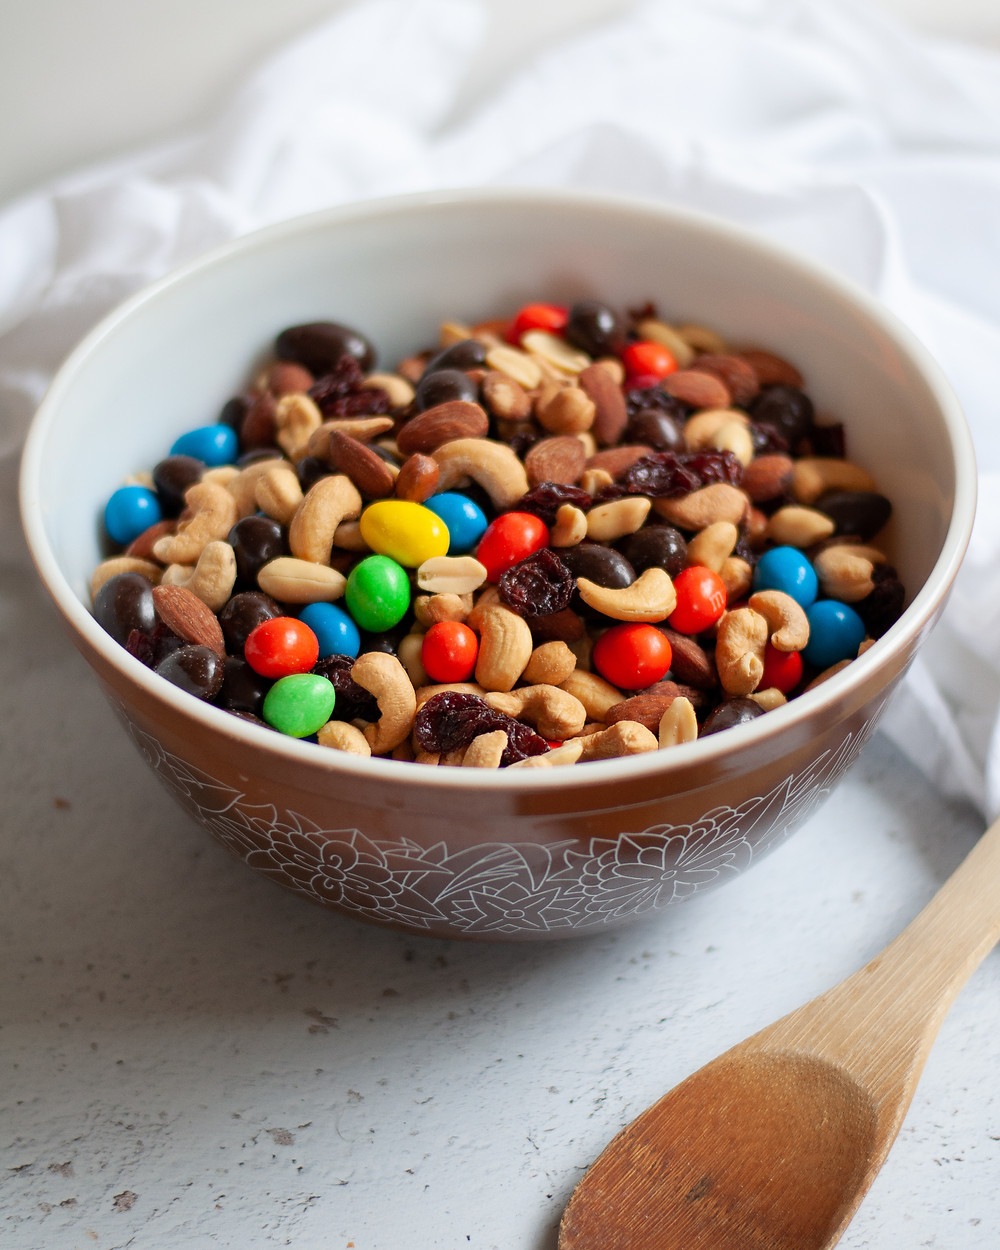 Bowl of homemade trail mix. The trail mix recipe pictured includes almonds, cashews, peanuts, peanut m&ms, dark chocolate covered almonds, and dried cherries.